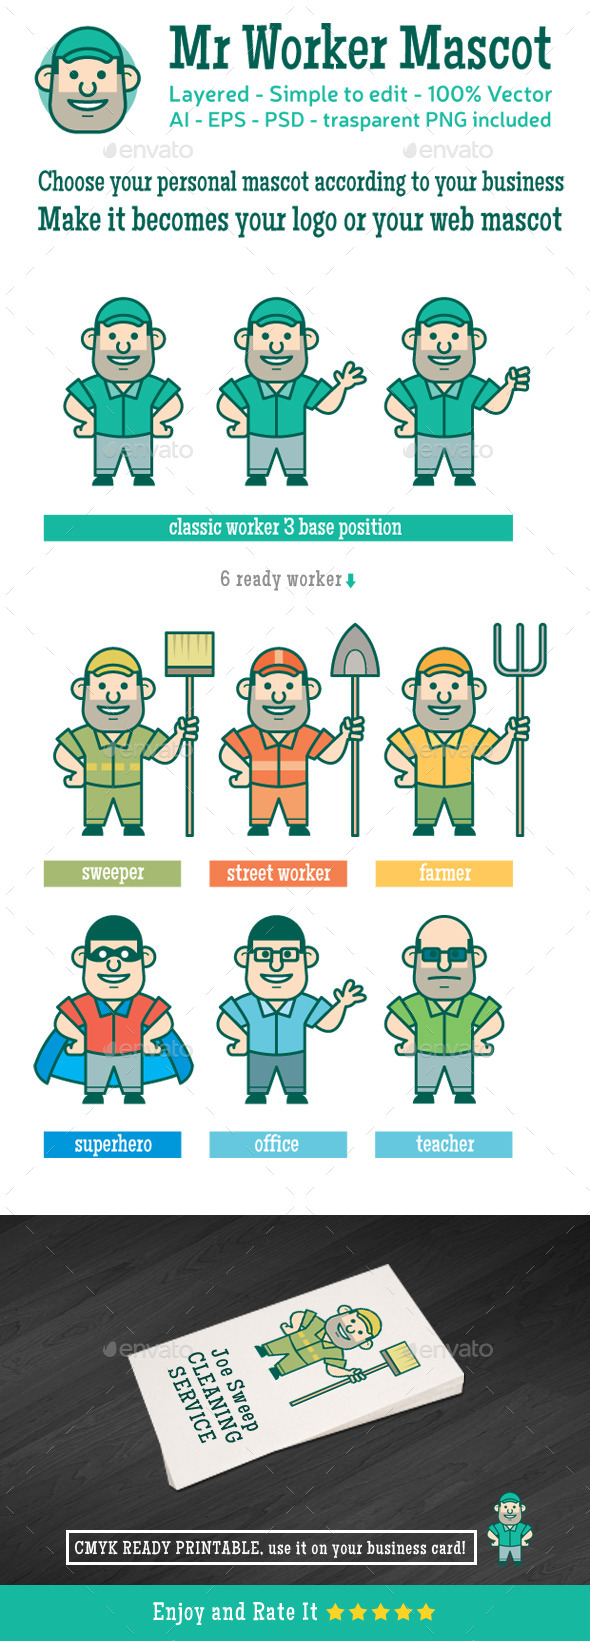 GraphicRiver Mr Worker Mascot 8860591